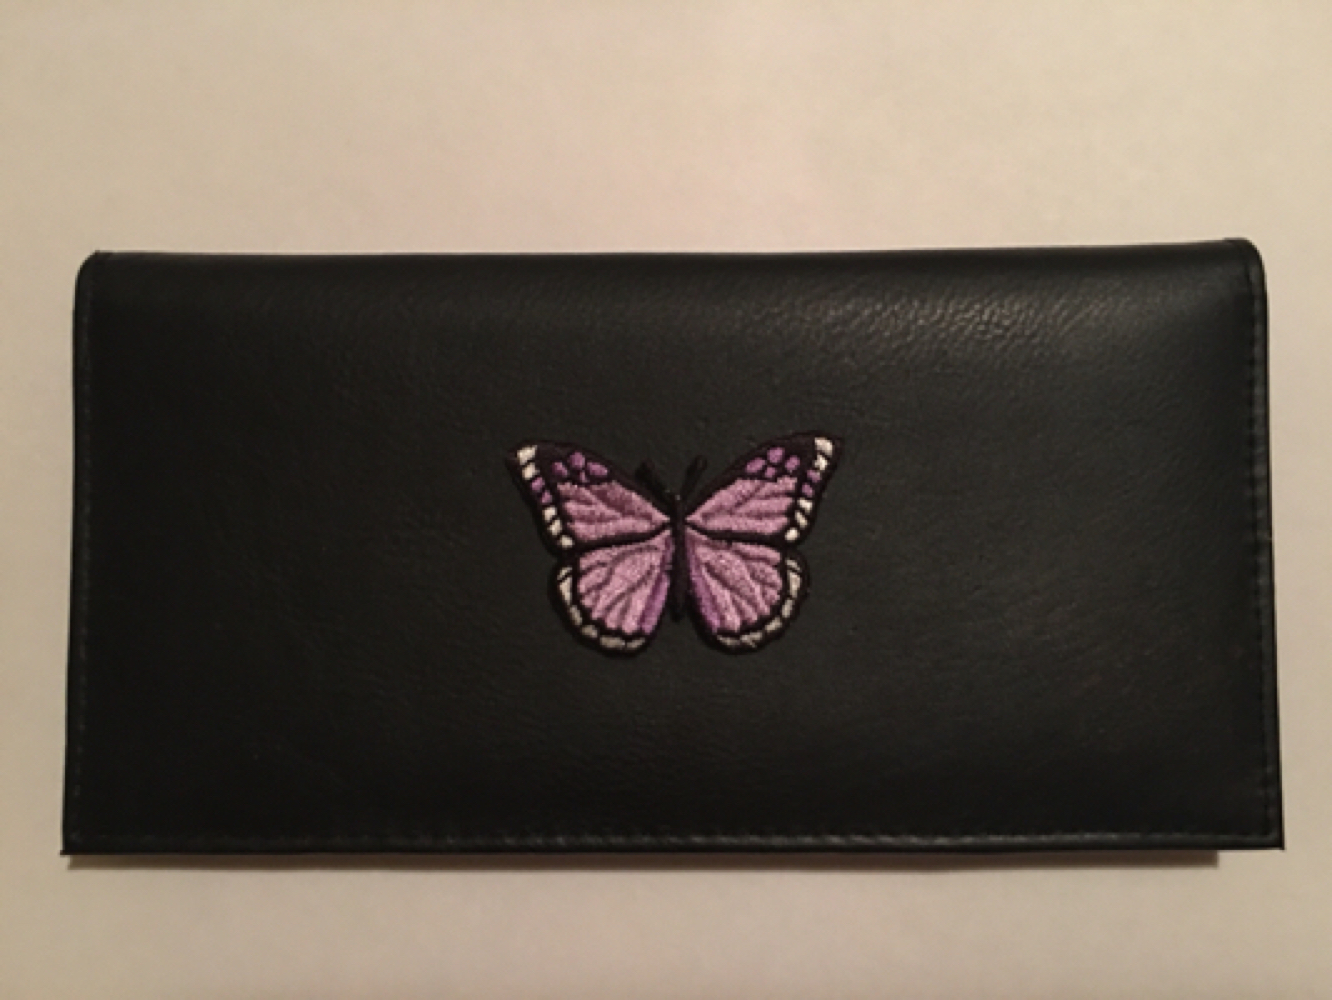 Primary image for Butterfly  Black Leather Checkbook Cover Free Shipping Butter Fly